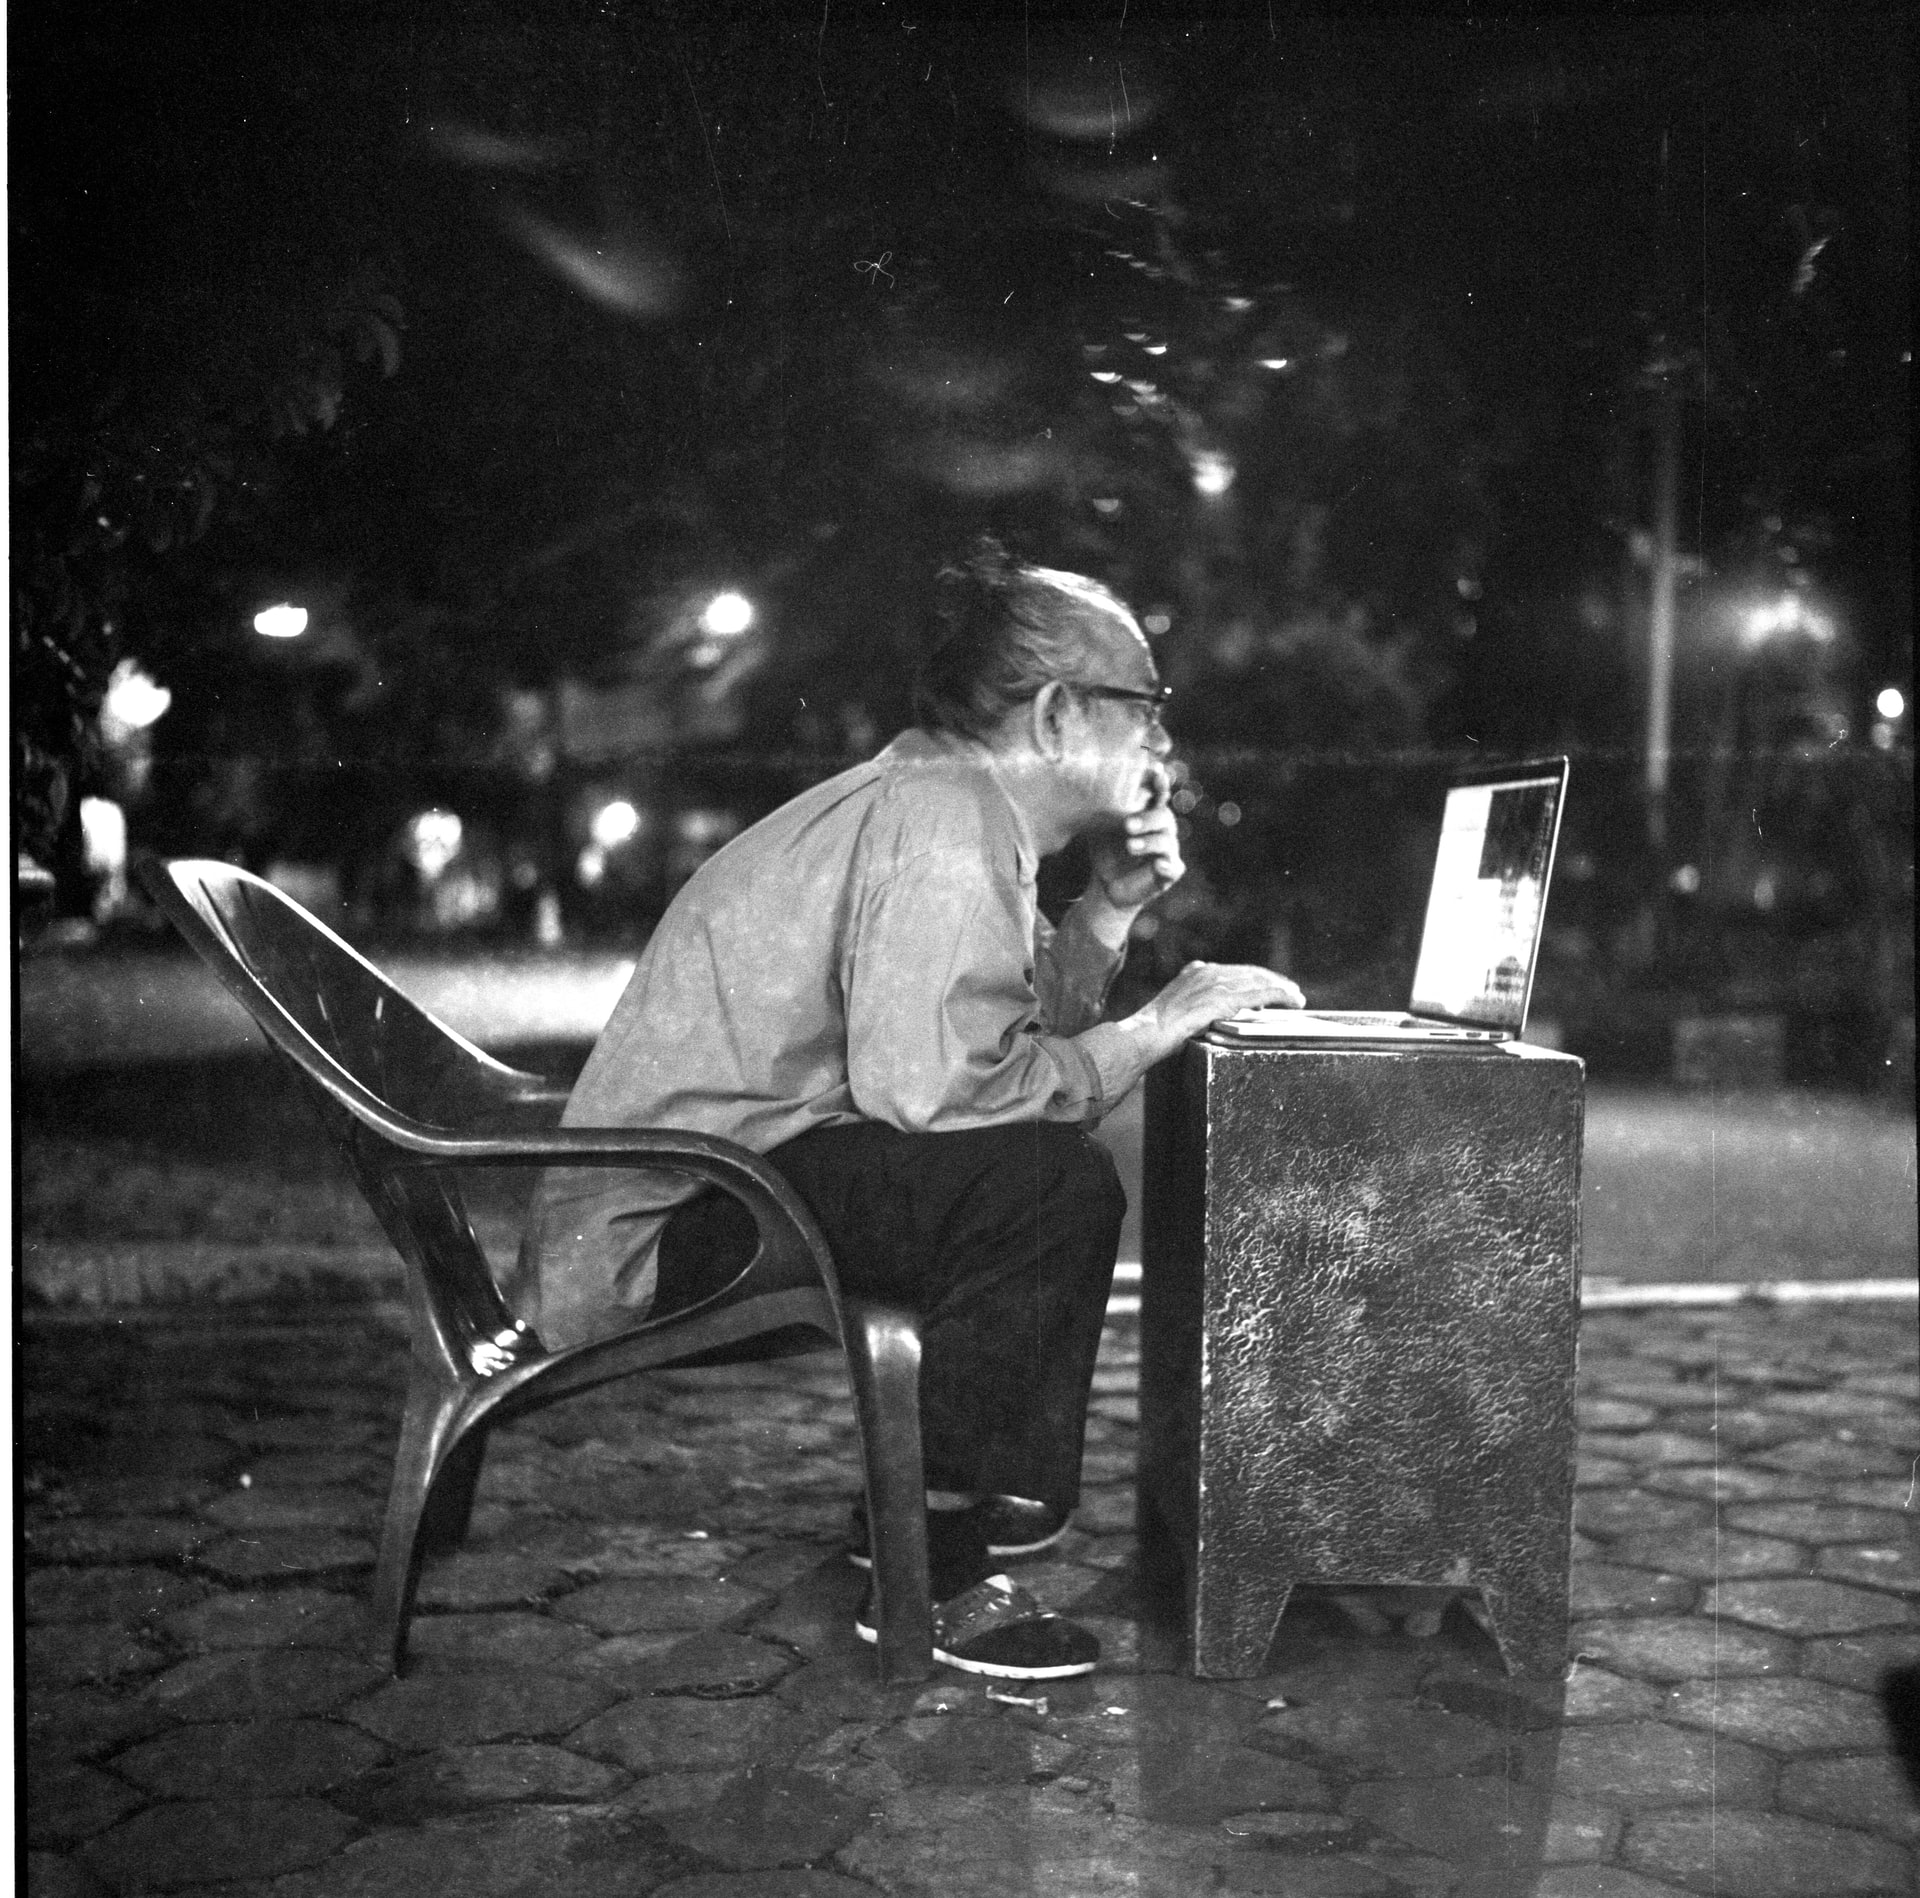 Black and white photo of a man users a computer on a street in Indonesia